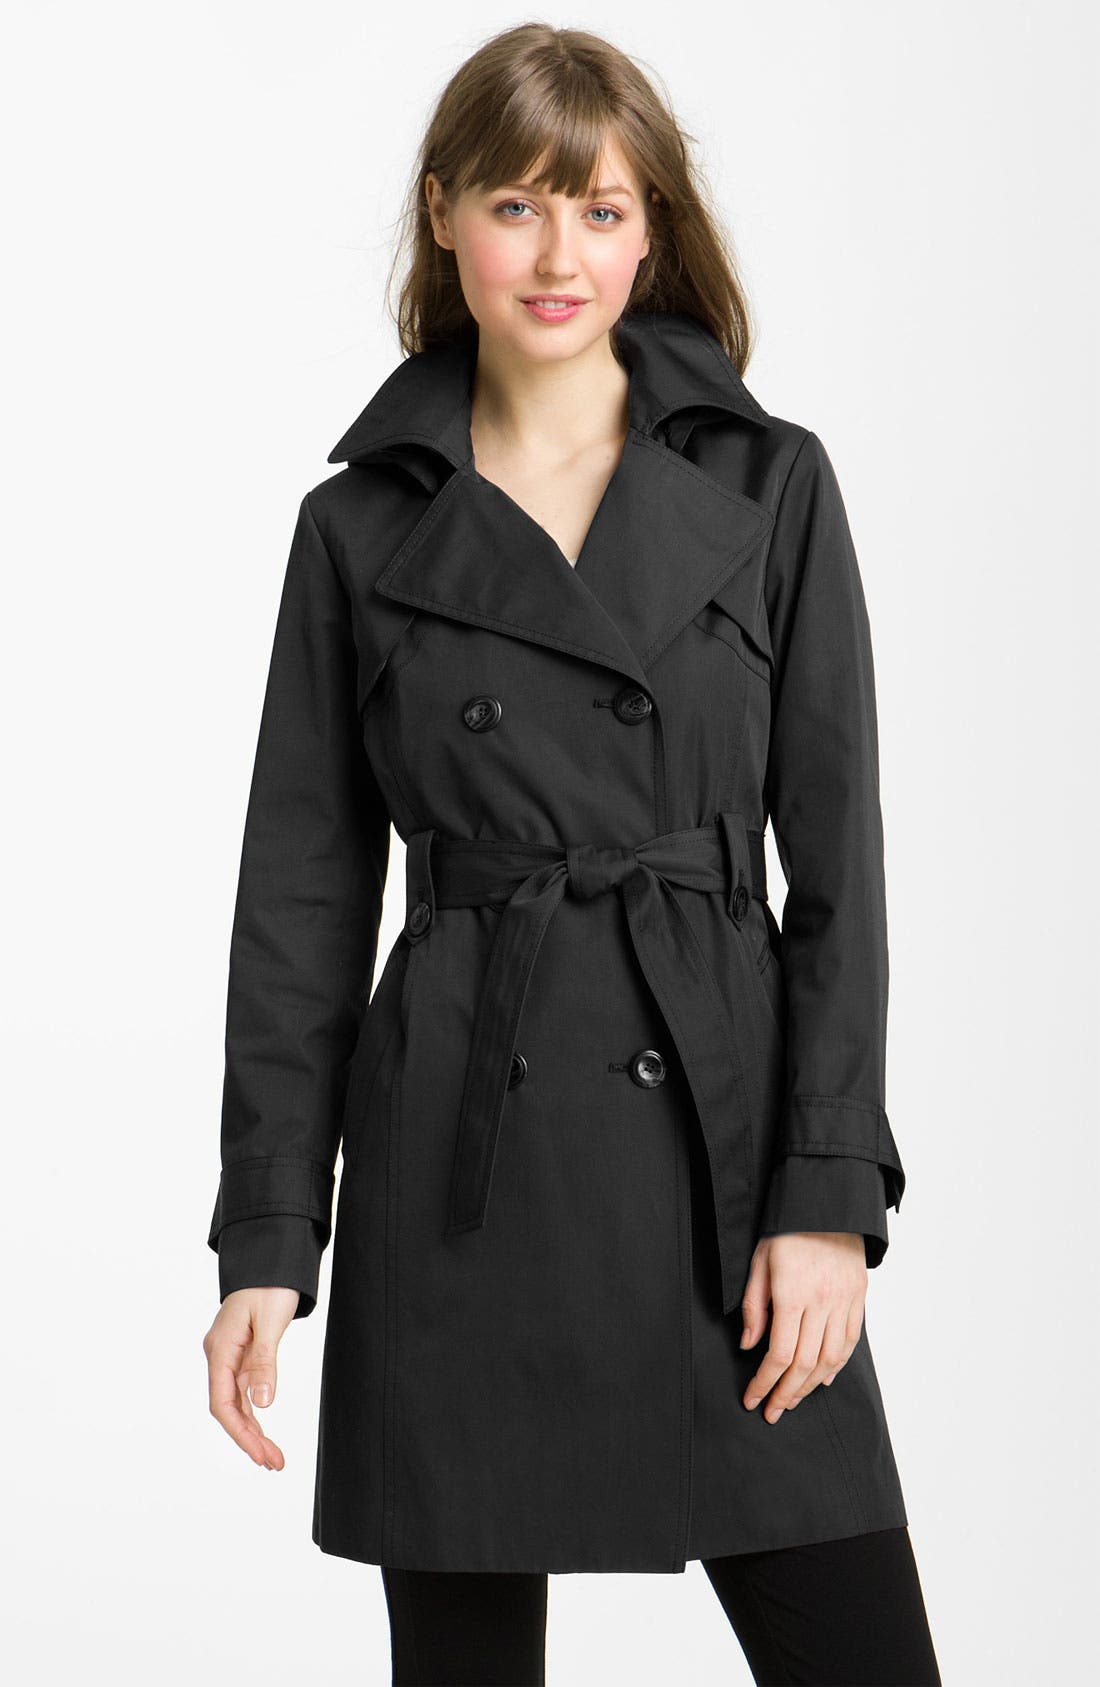 Alternate Image 1 Selected - Ellen Tracy Double Breasted Trench with Detachable Hood (Nordstrom Exclusive)